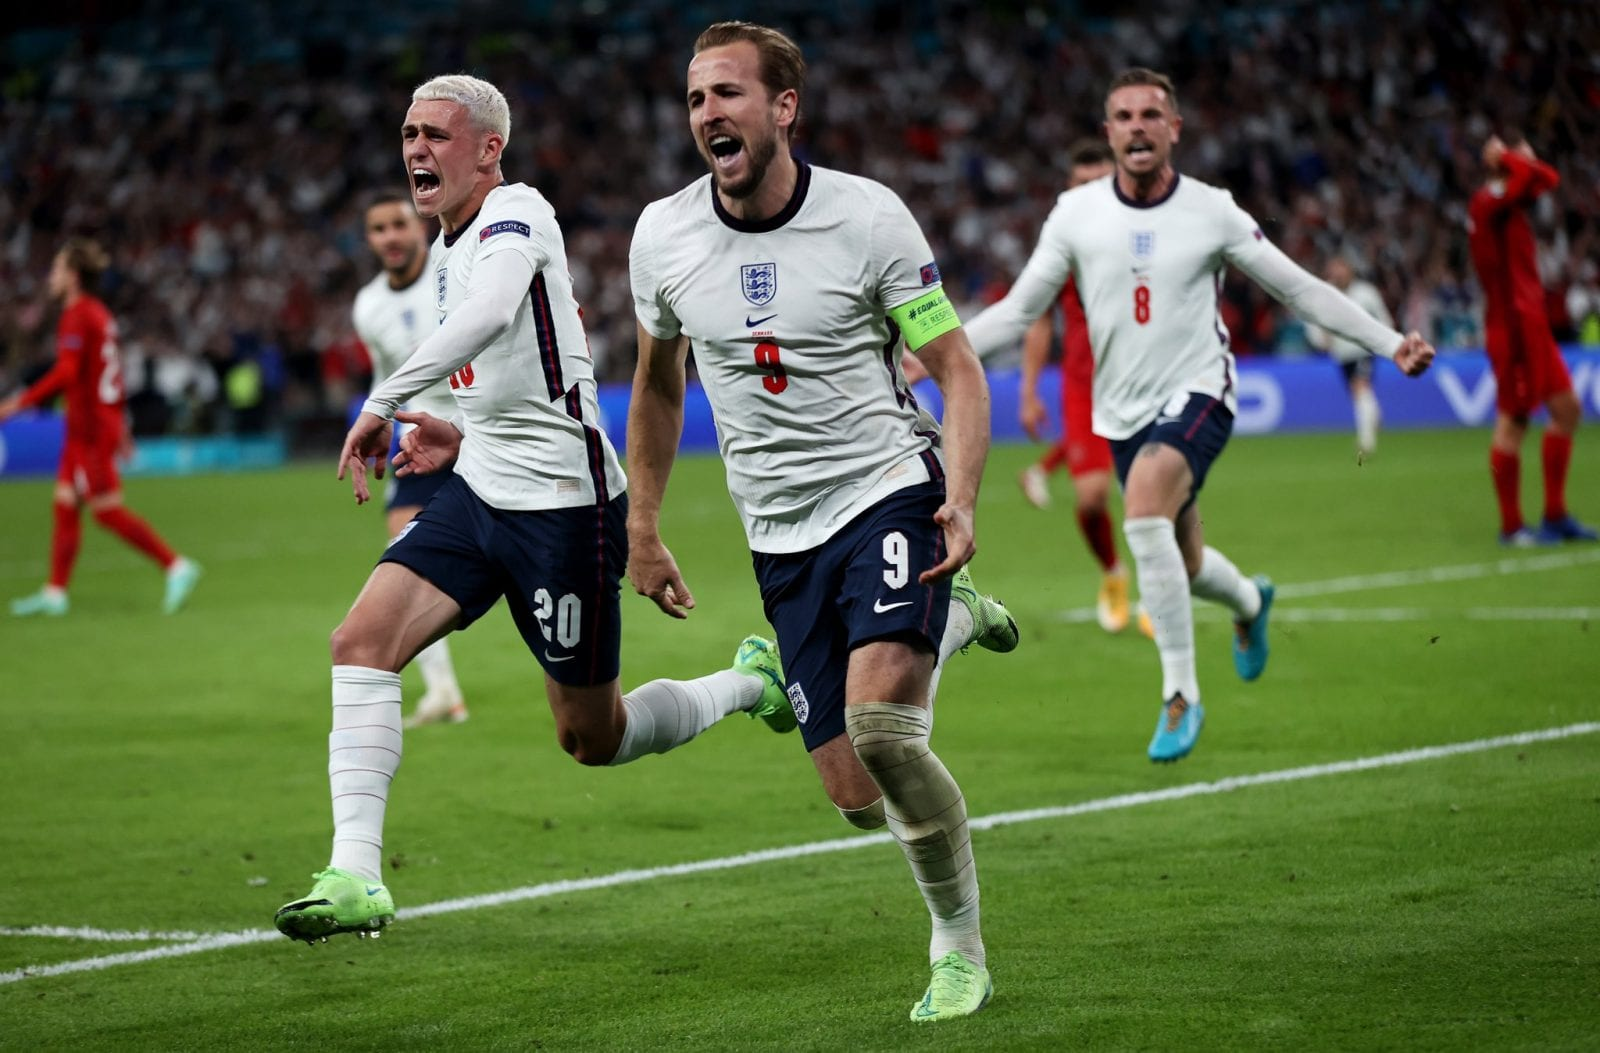 England will donate prize money to the NHS if they win Euro 2020, The Manc